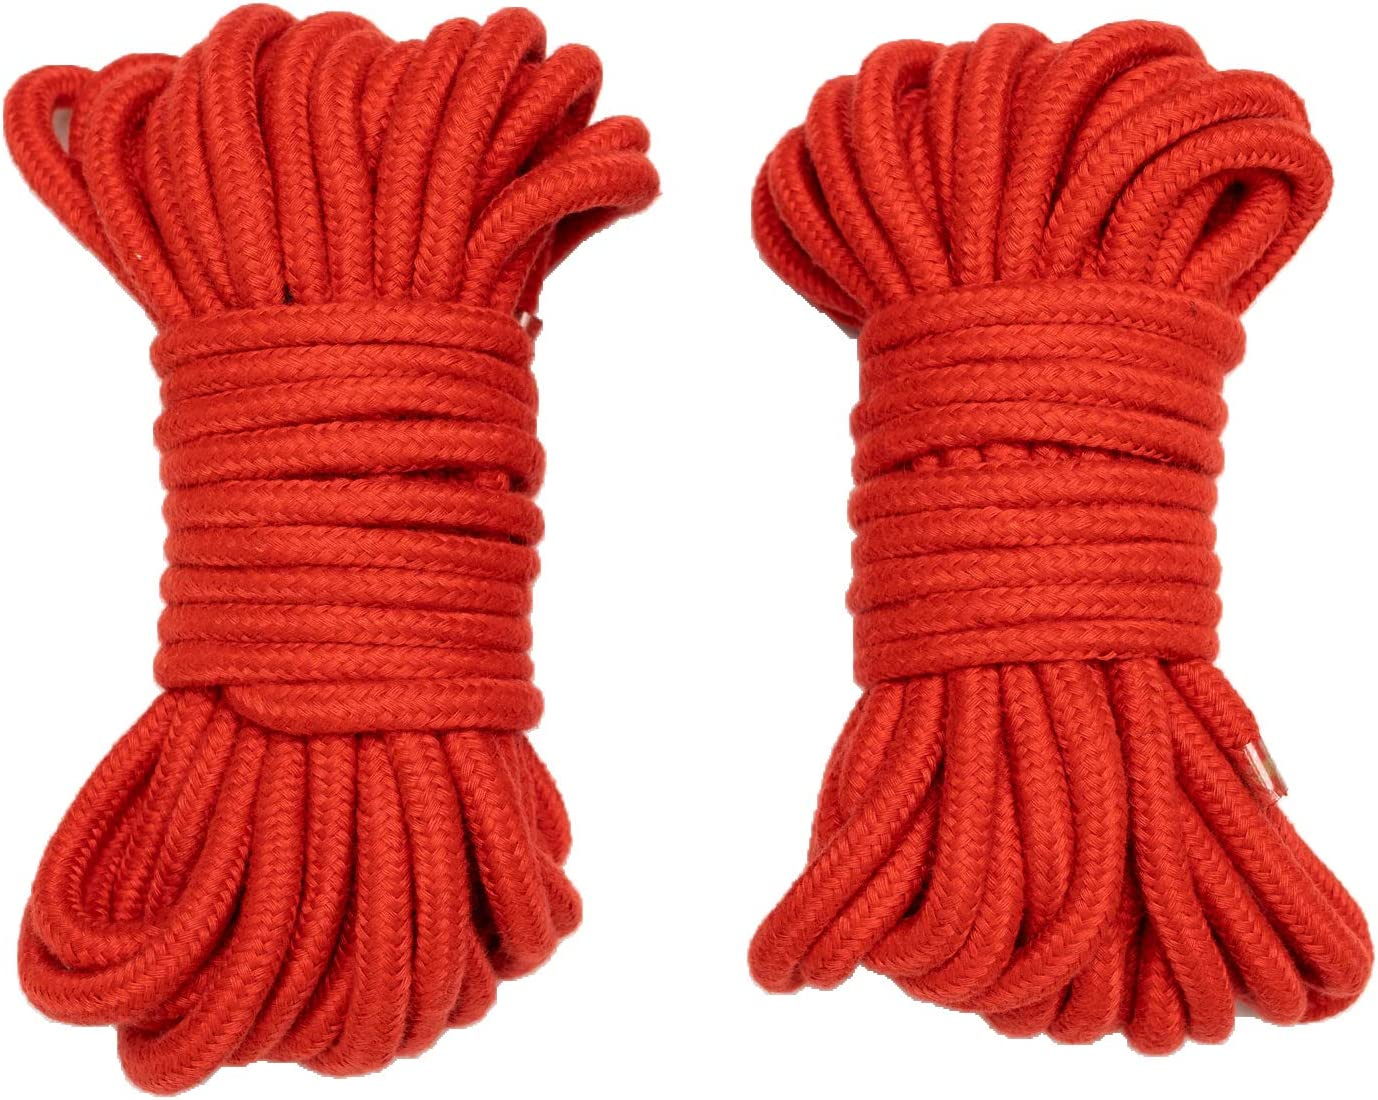 Soft Cotton Rope 32 feet//10m 8mm 1//3 inch 2 Pack of Purple Diameter Twisted Braided Multi-Function Natural Utility Durable Long